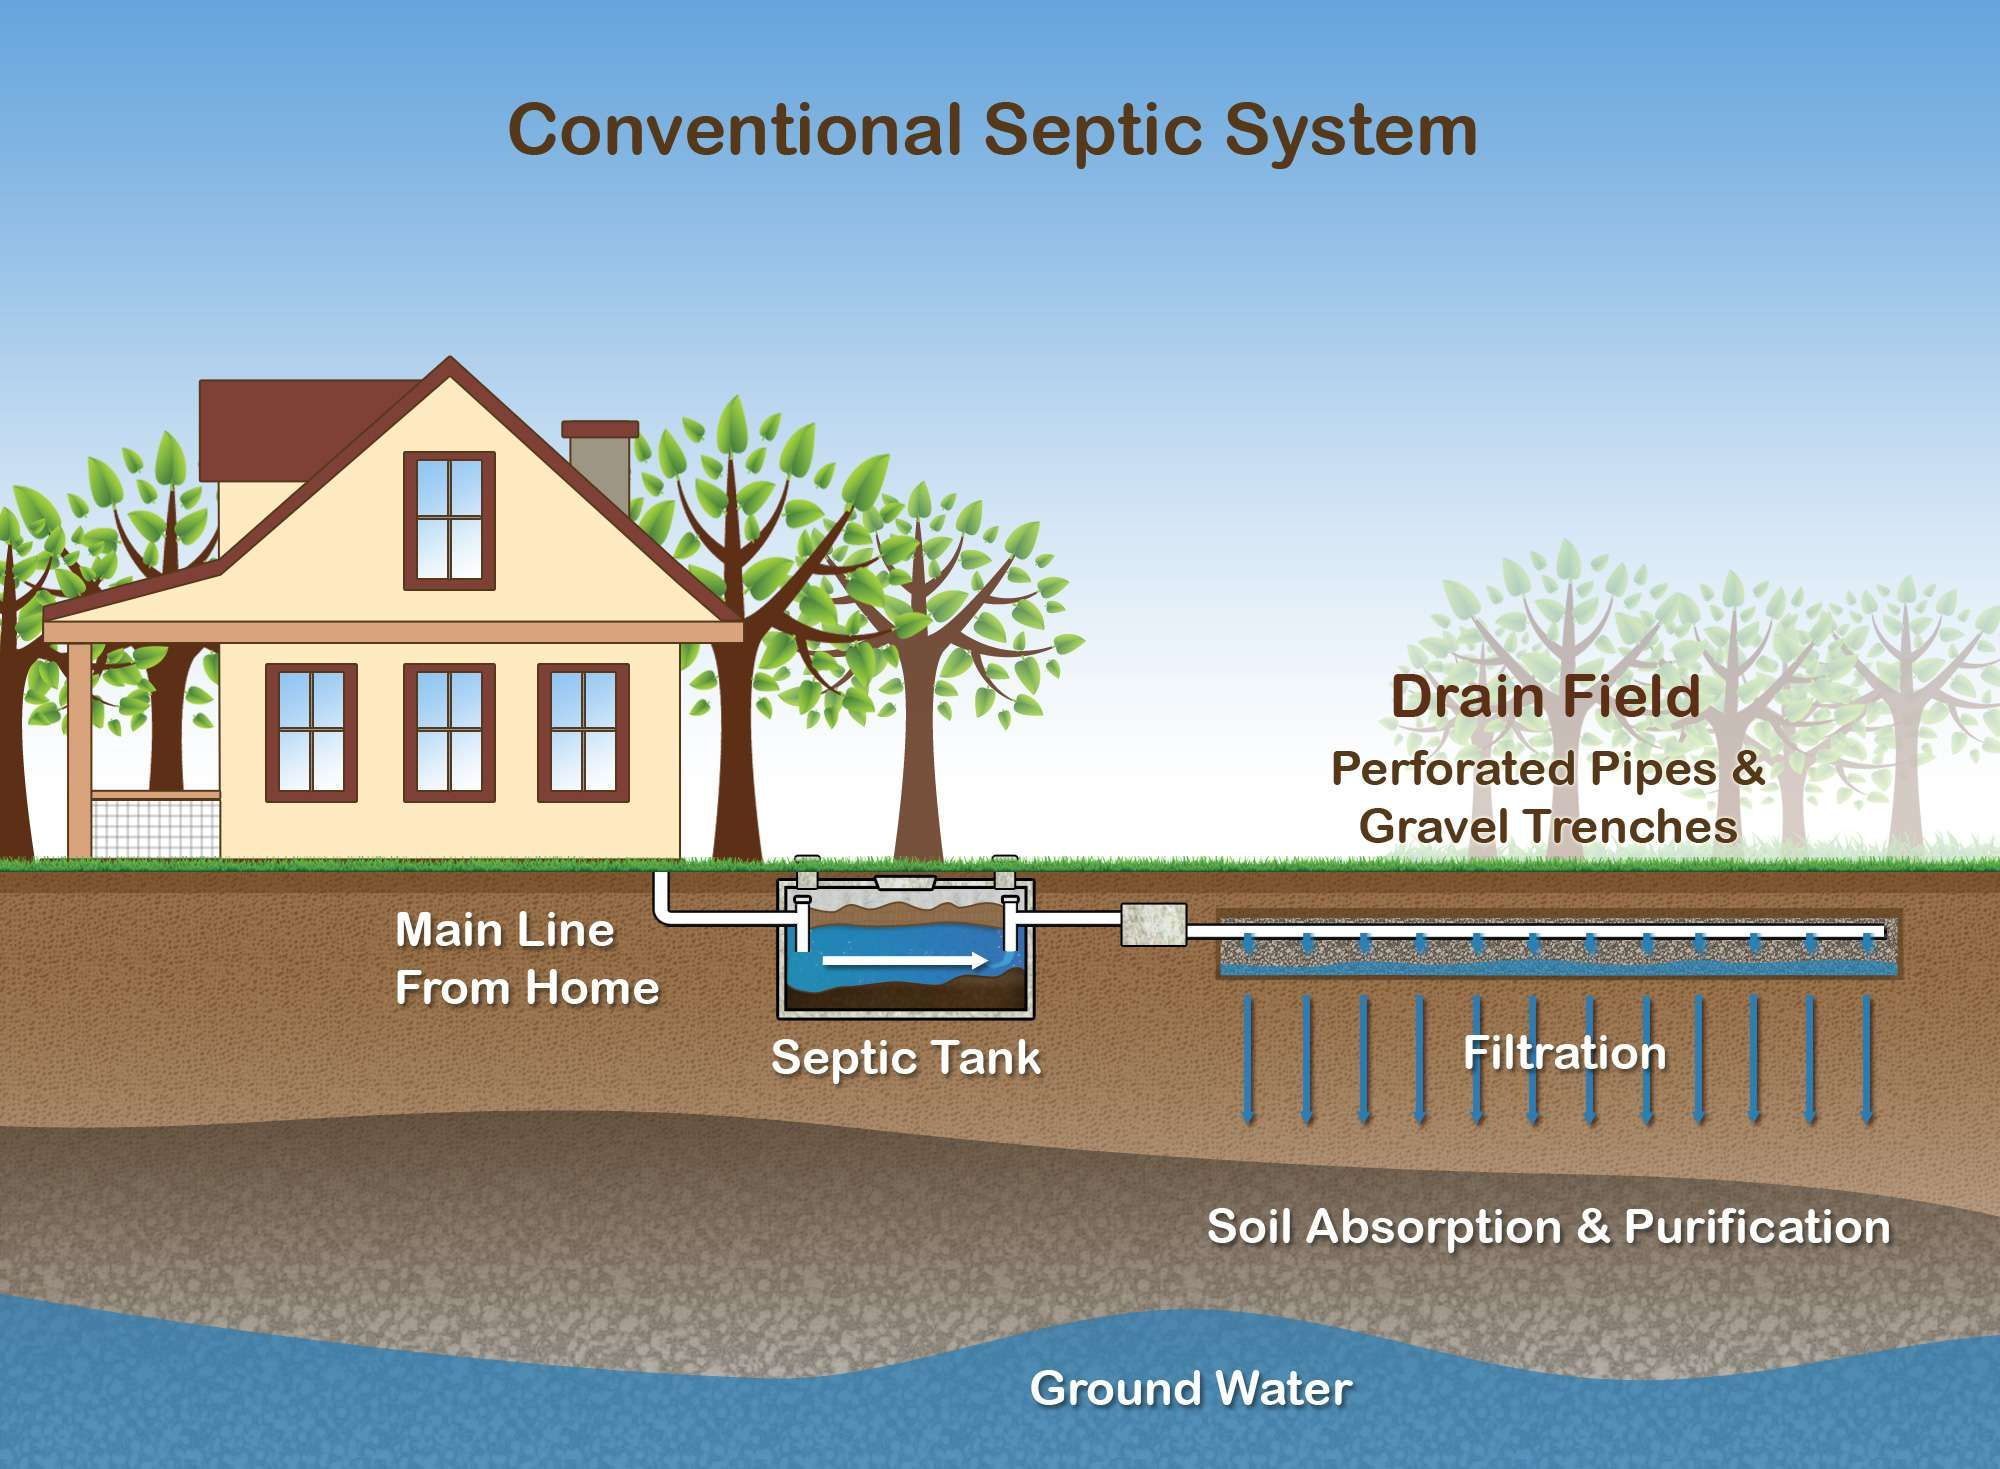 Septic tank how it works-San Diego Septic Tank Repair, Installation, & Pumping Service Pros-We do septic tank pumping, tank repairs, septic tank installations, 24/7 emergency septic services, septic tank replacement, inspections, drain cleaning, high velocity water jetting, septic system cleaning, pump-outs, septic tank maintenance, and more